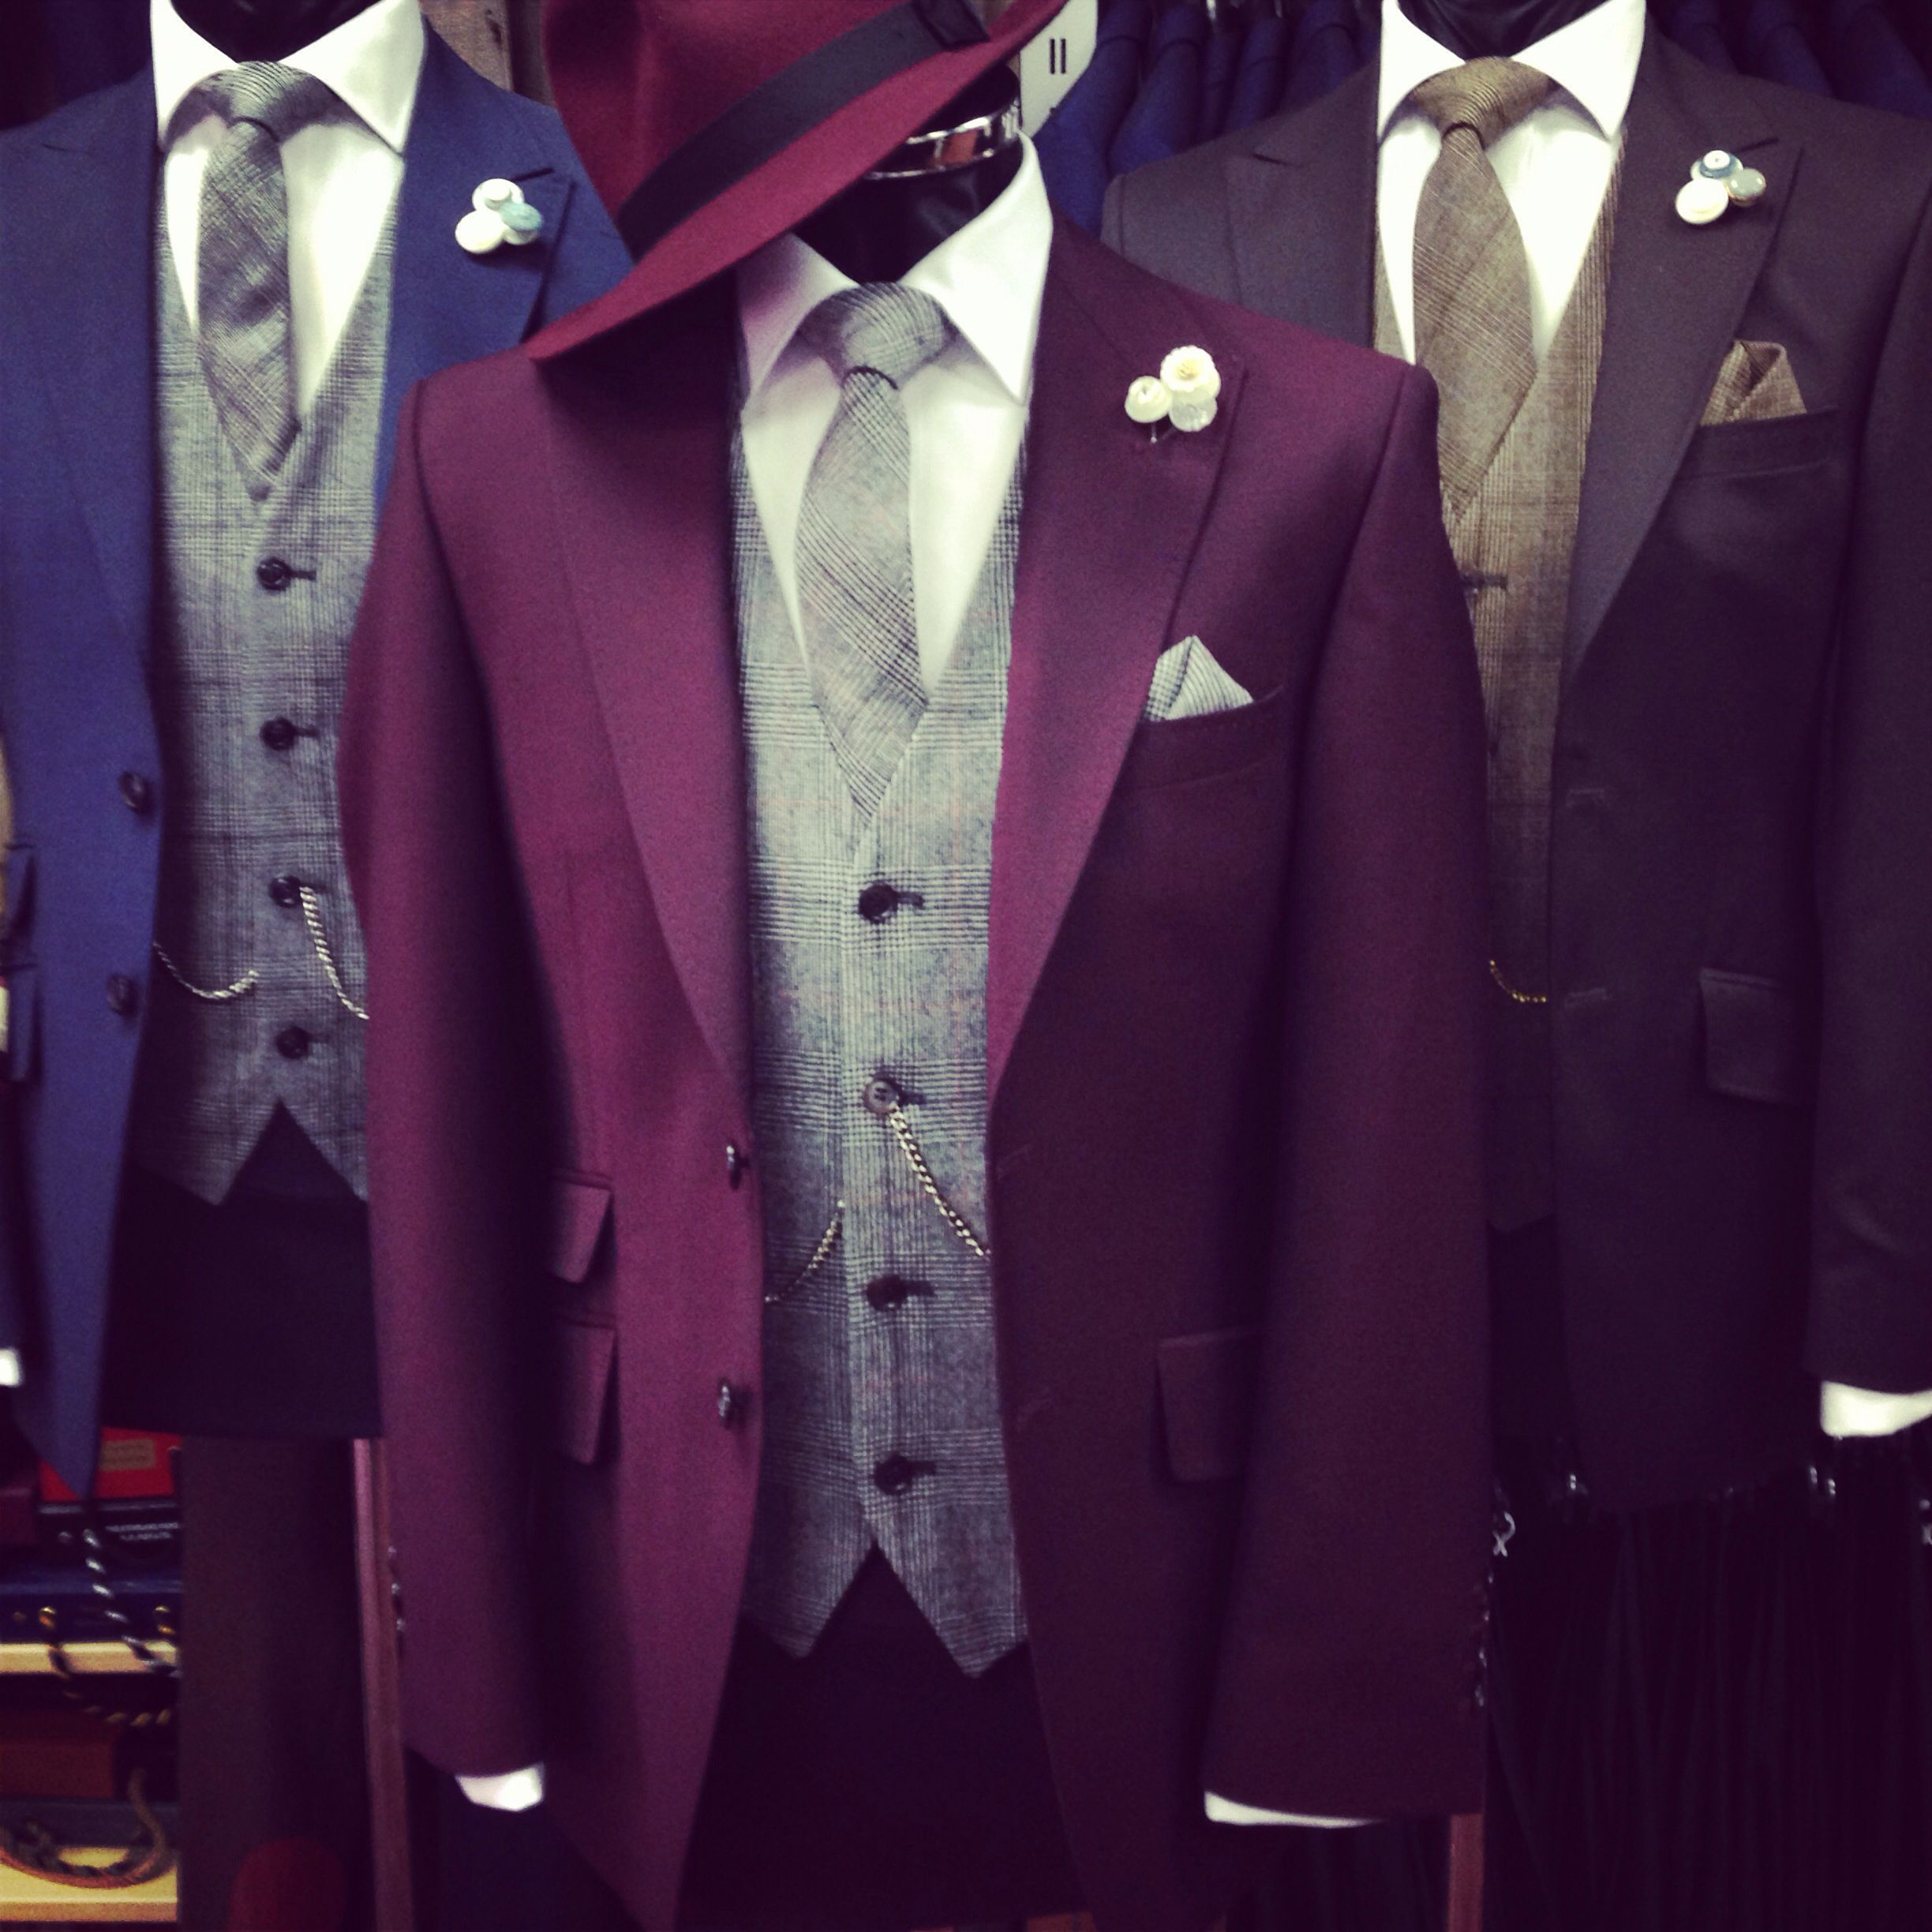 New Colour Available For 2014 The Burgundy York Hire Suit Terno